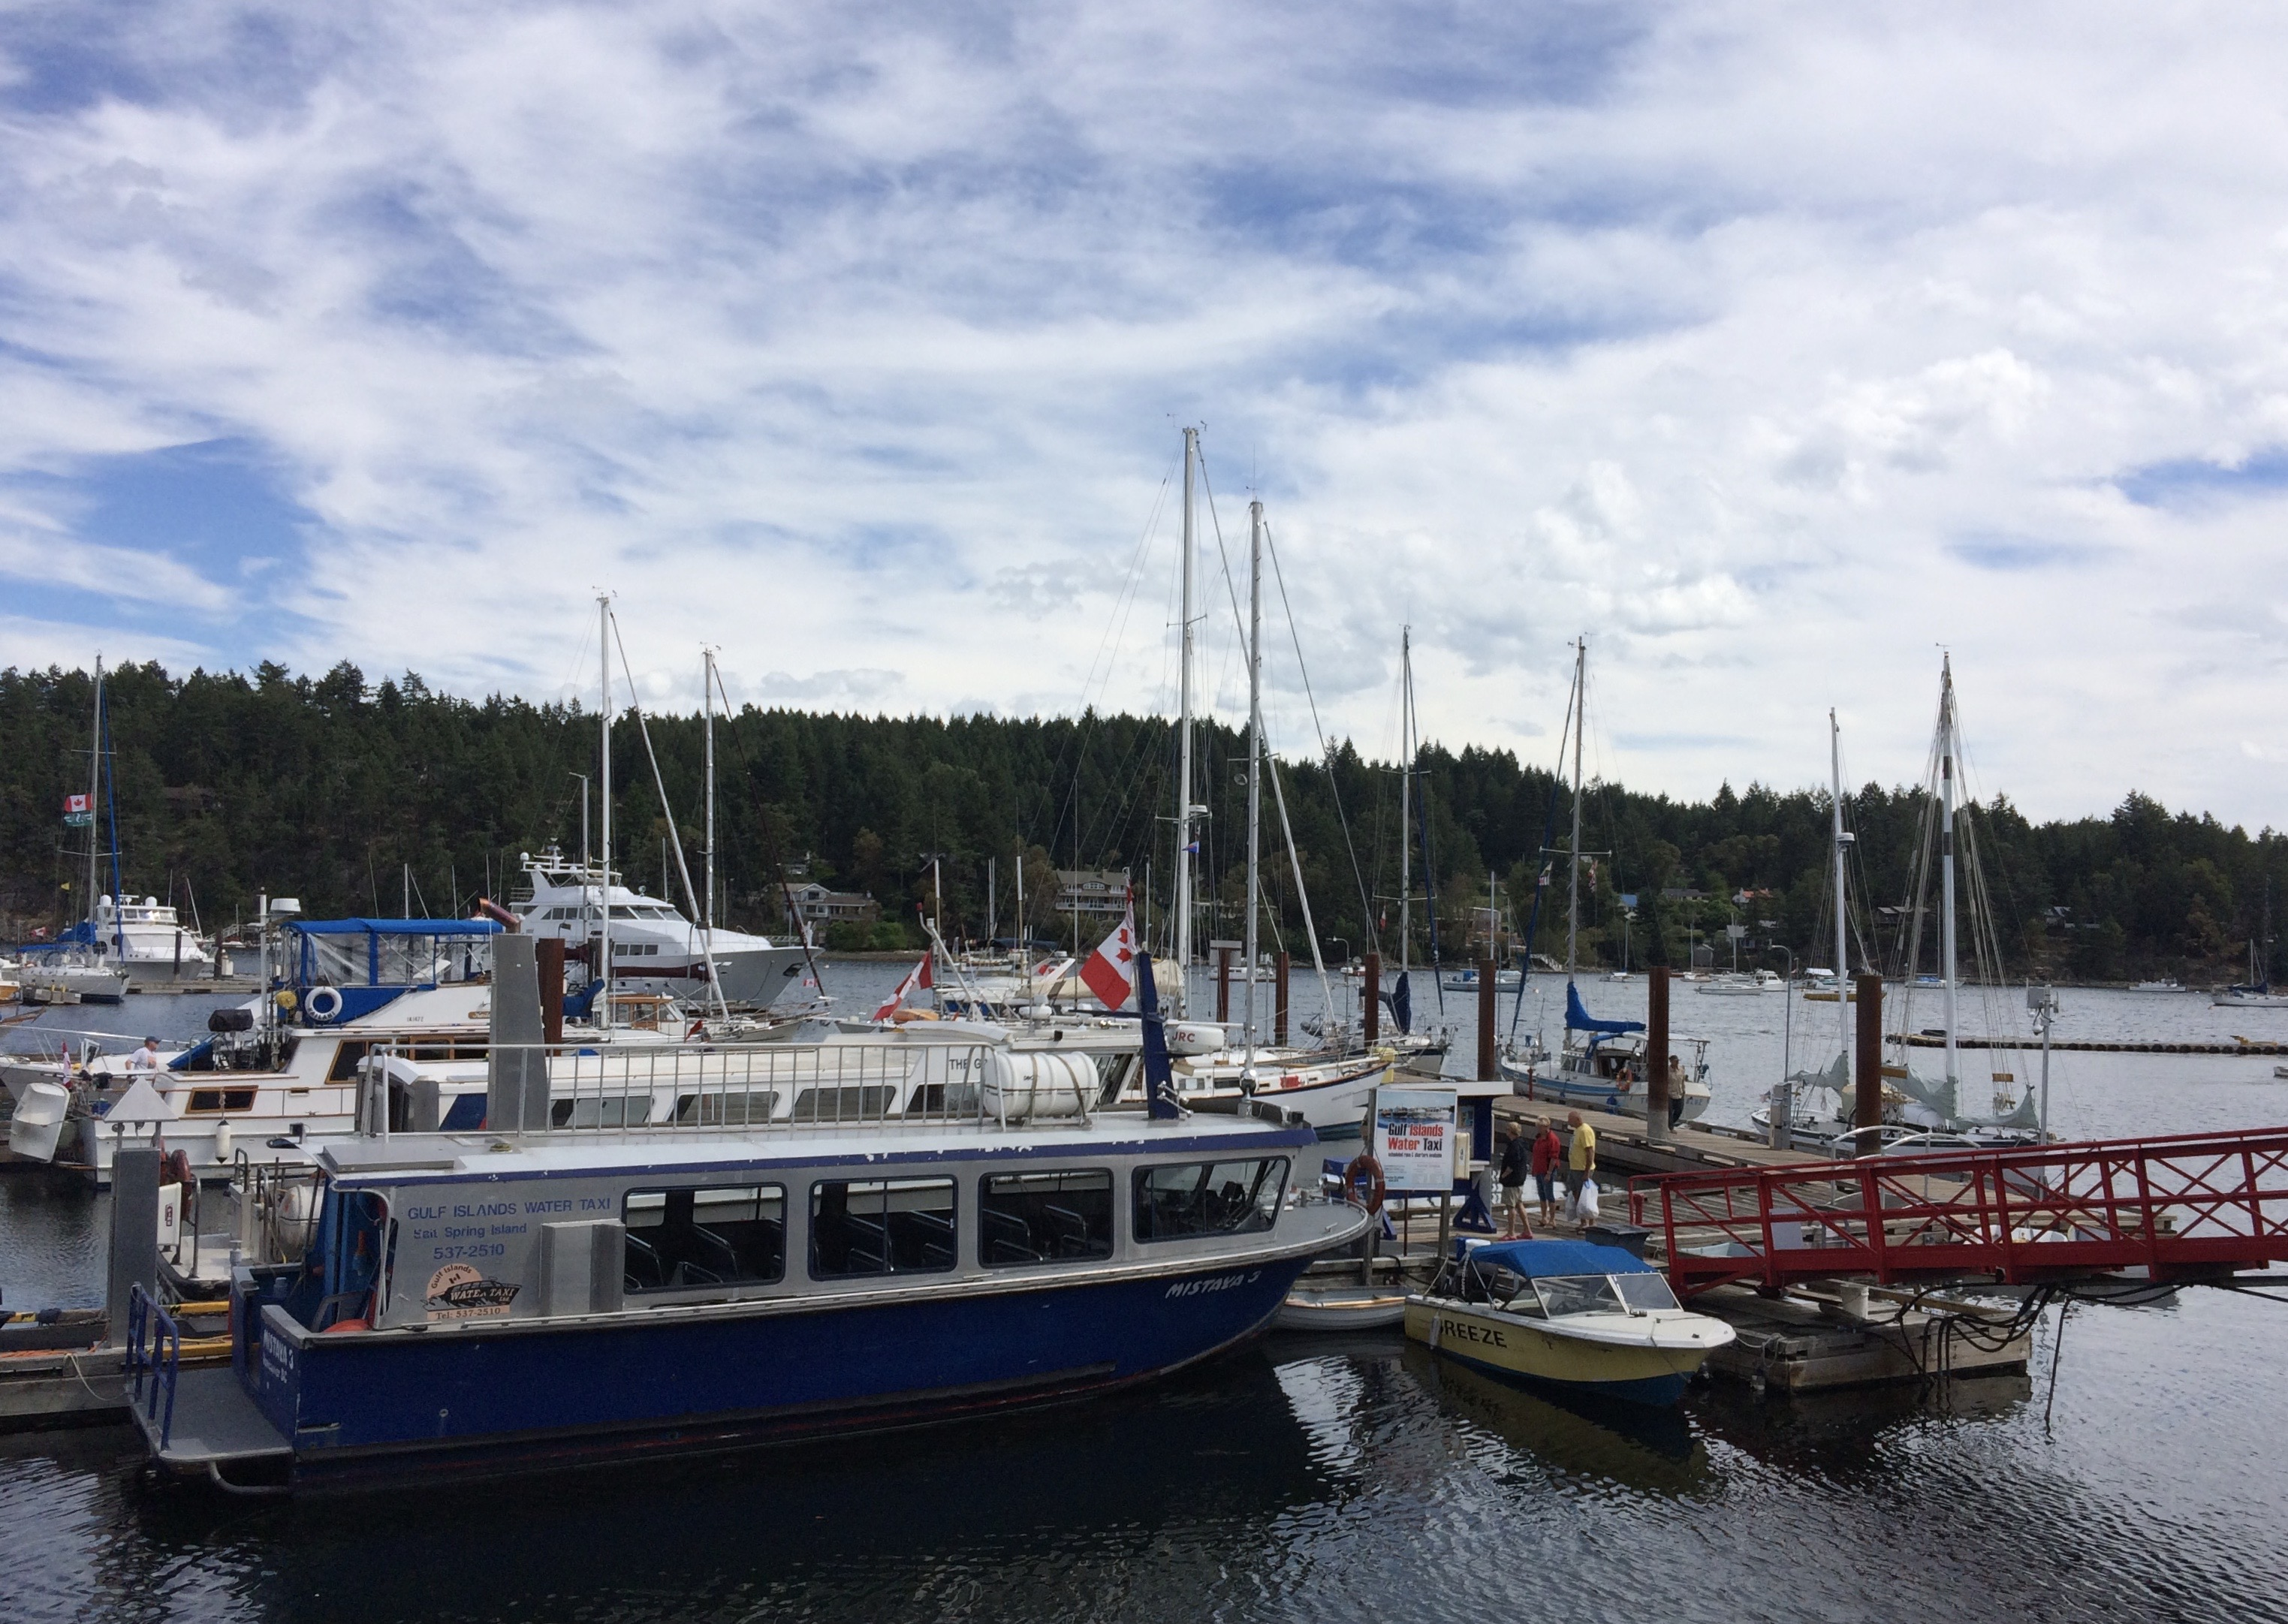 Boats tied up to a dock in the Salish Sea